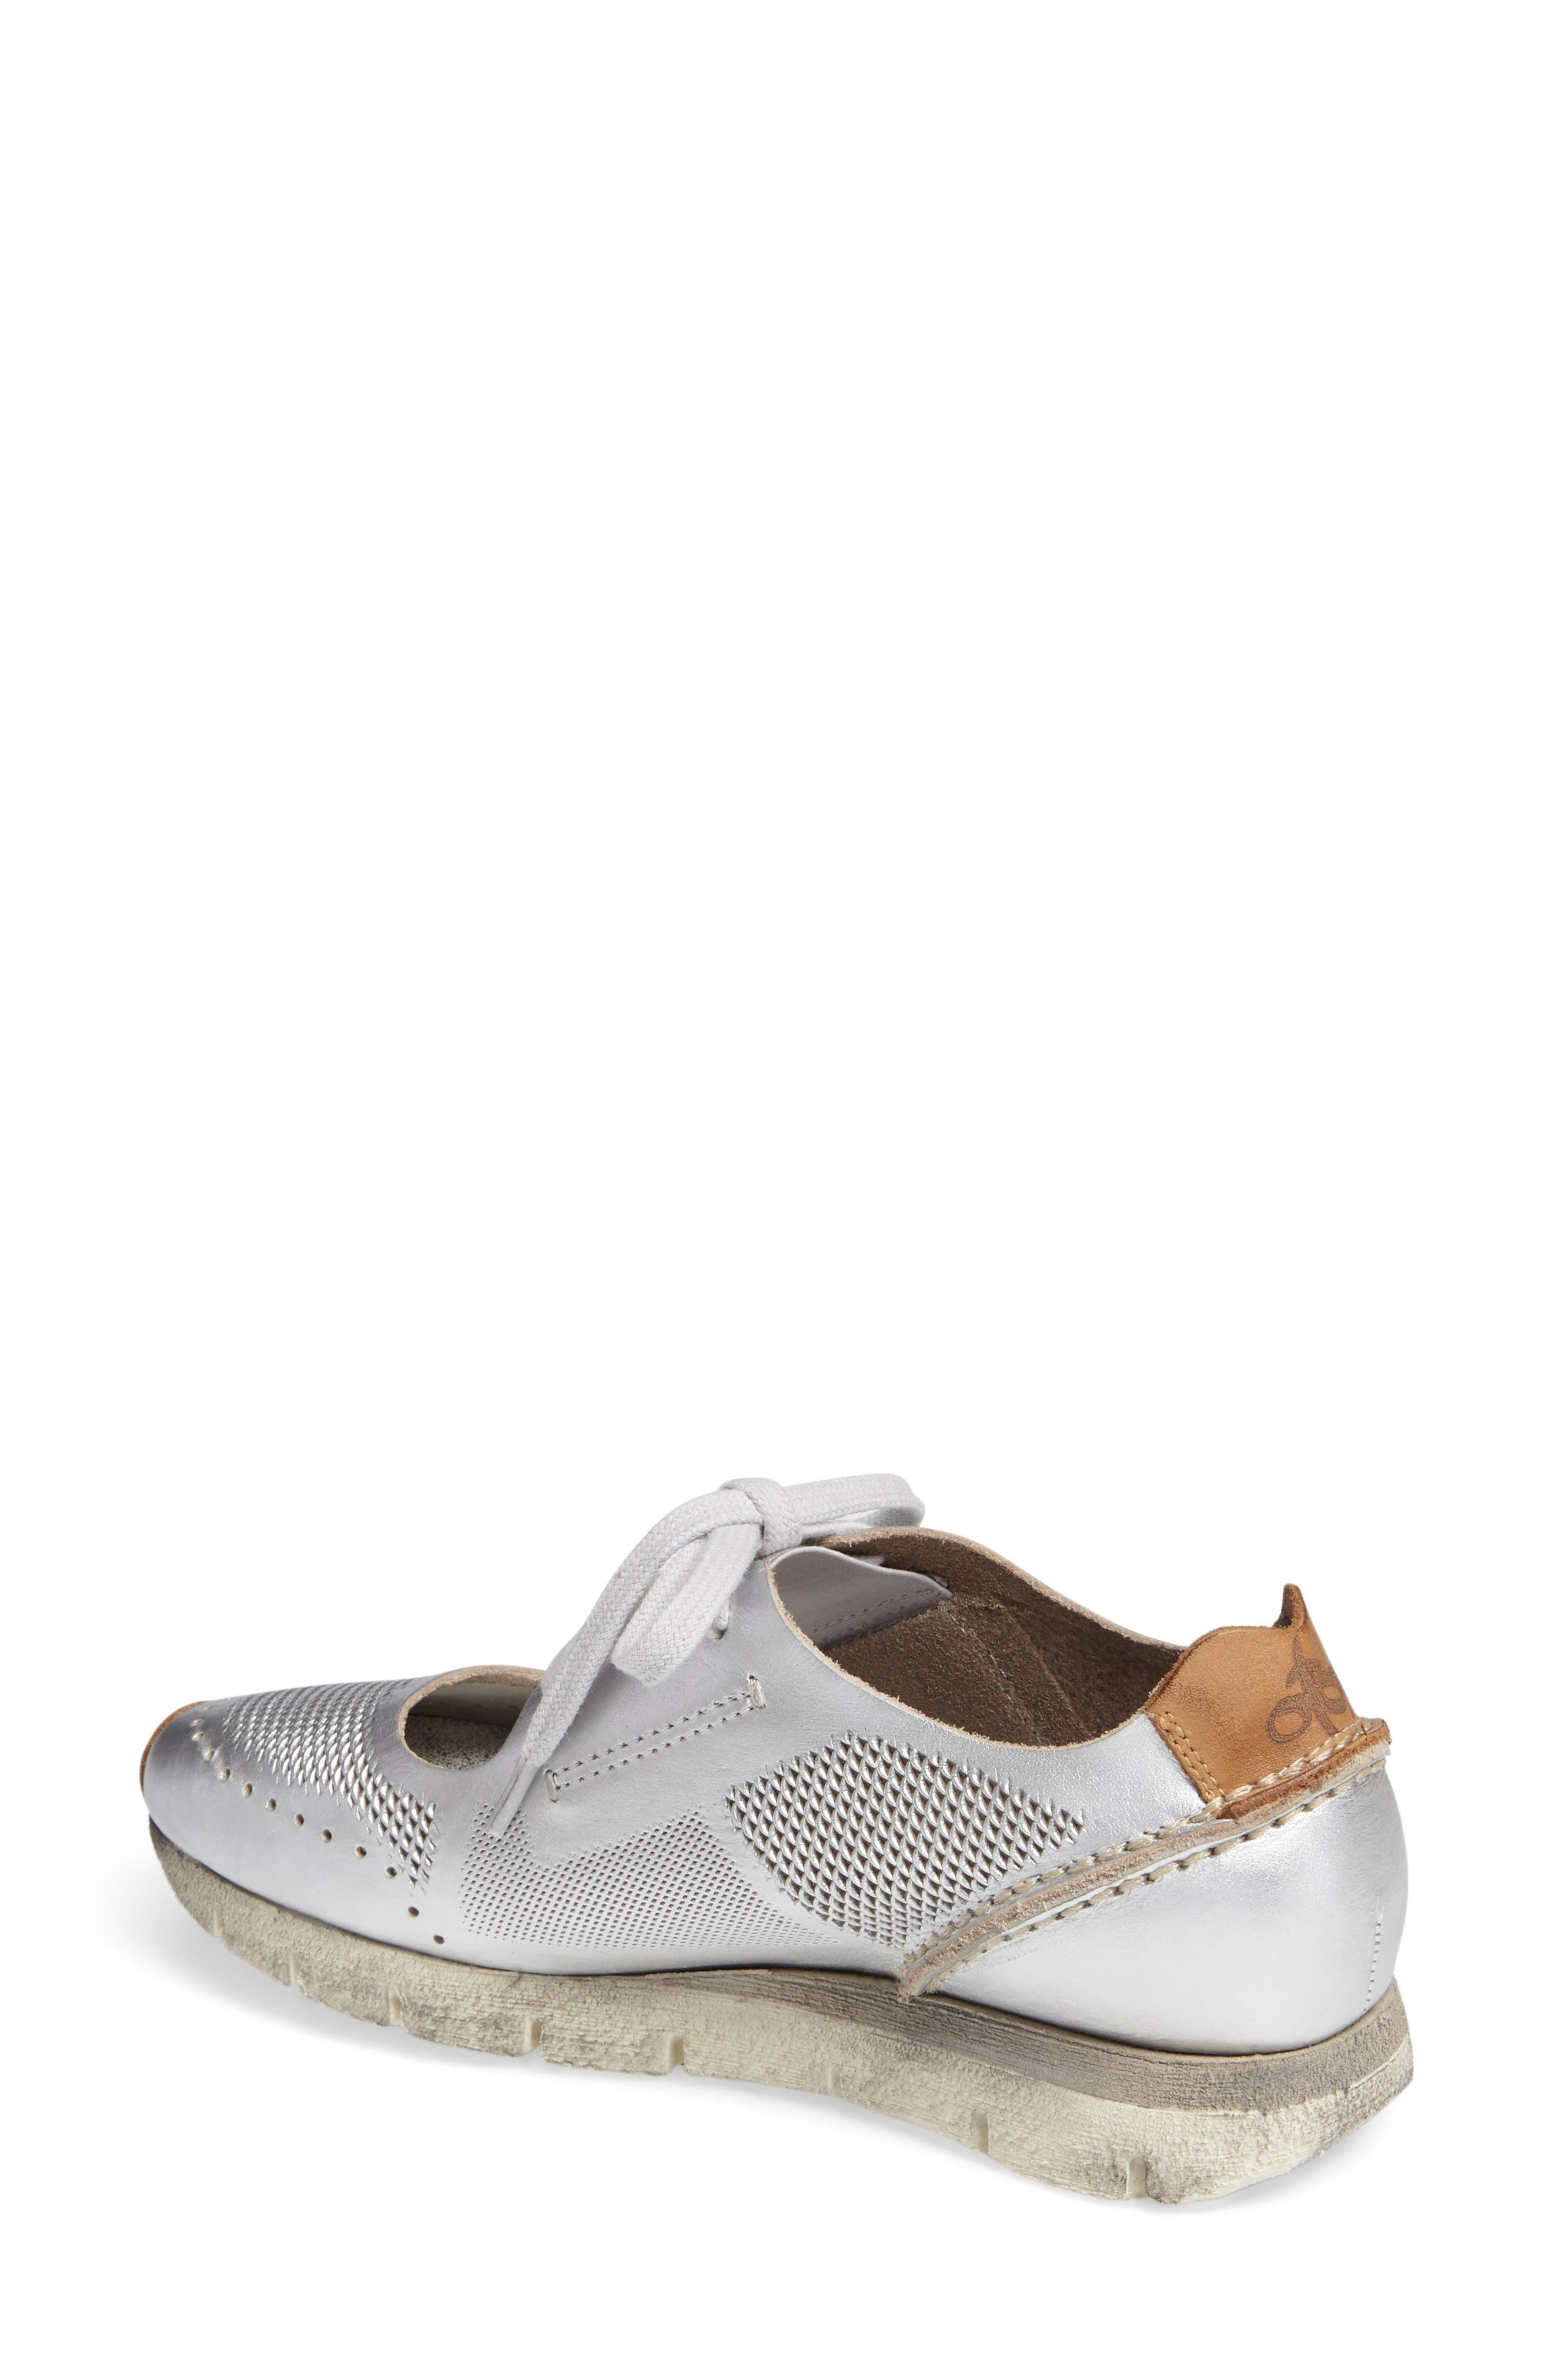 Star Dust Cutout Sneaker,                             Alternate thumbnail 2, color,                             Silver Leather